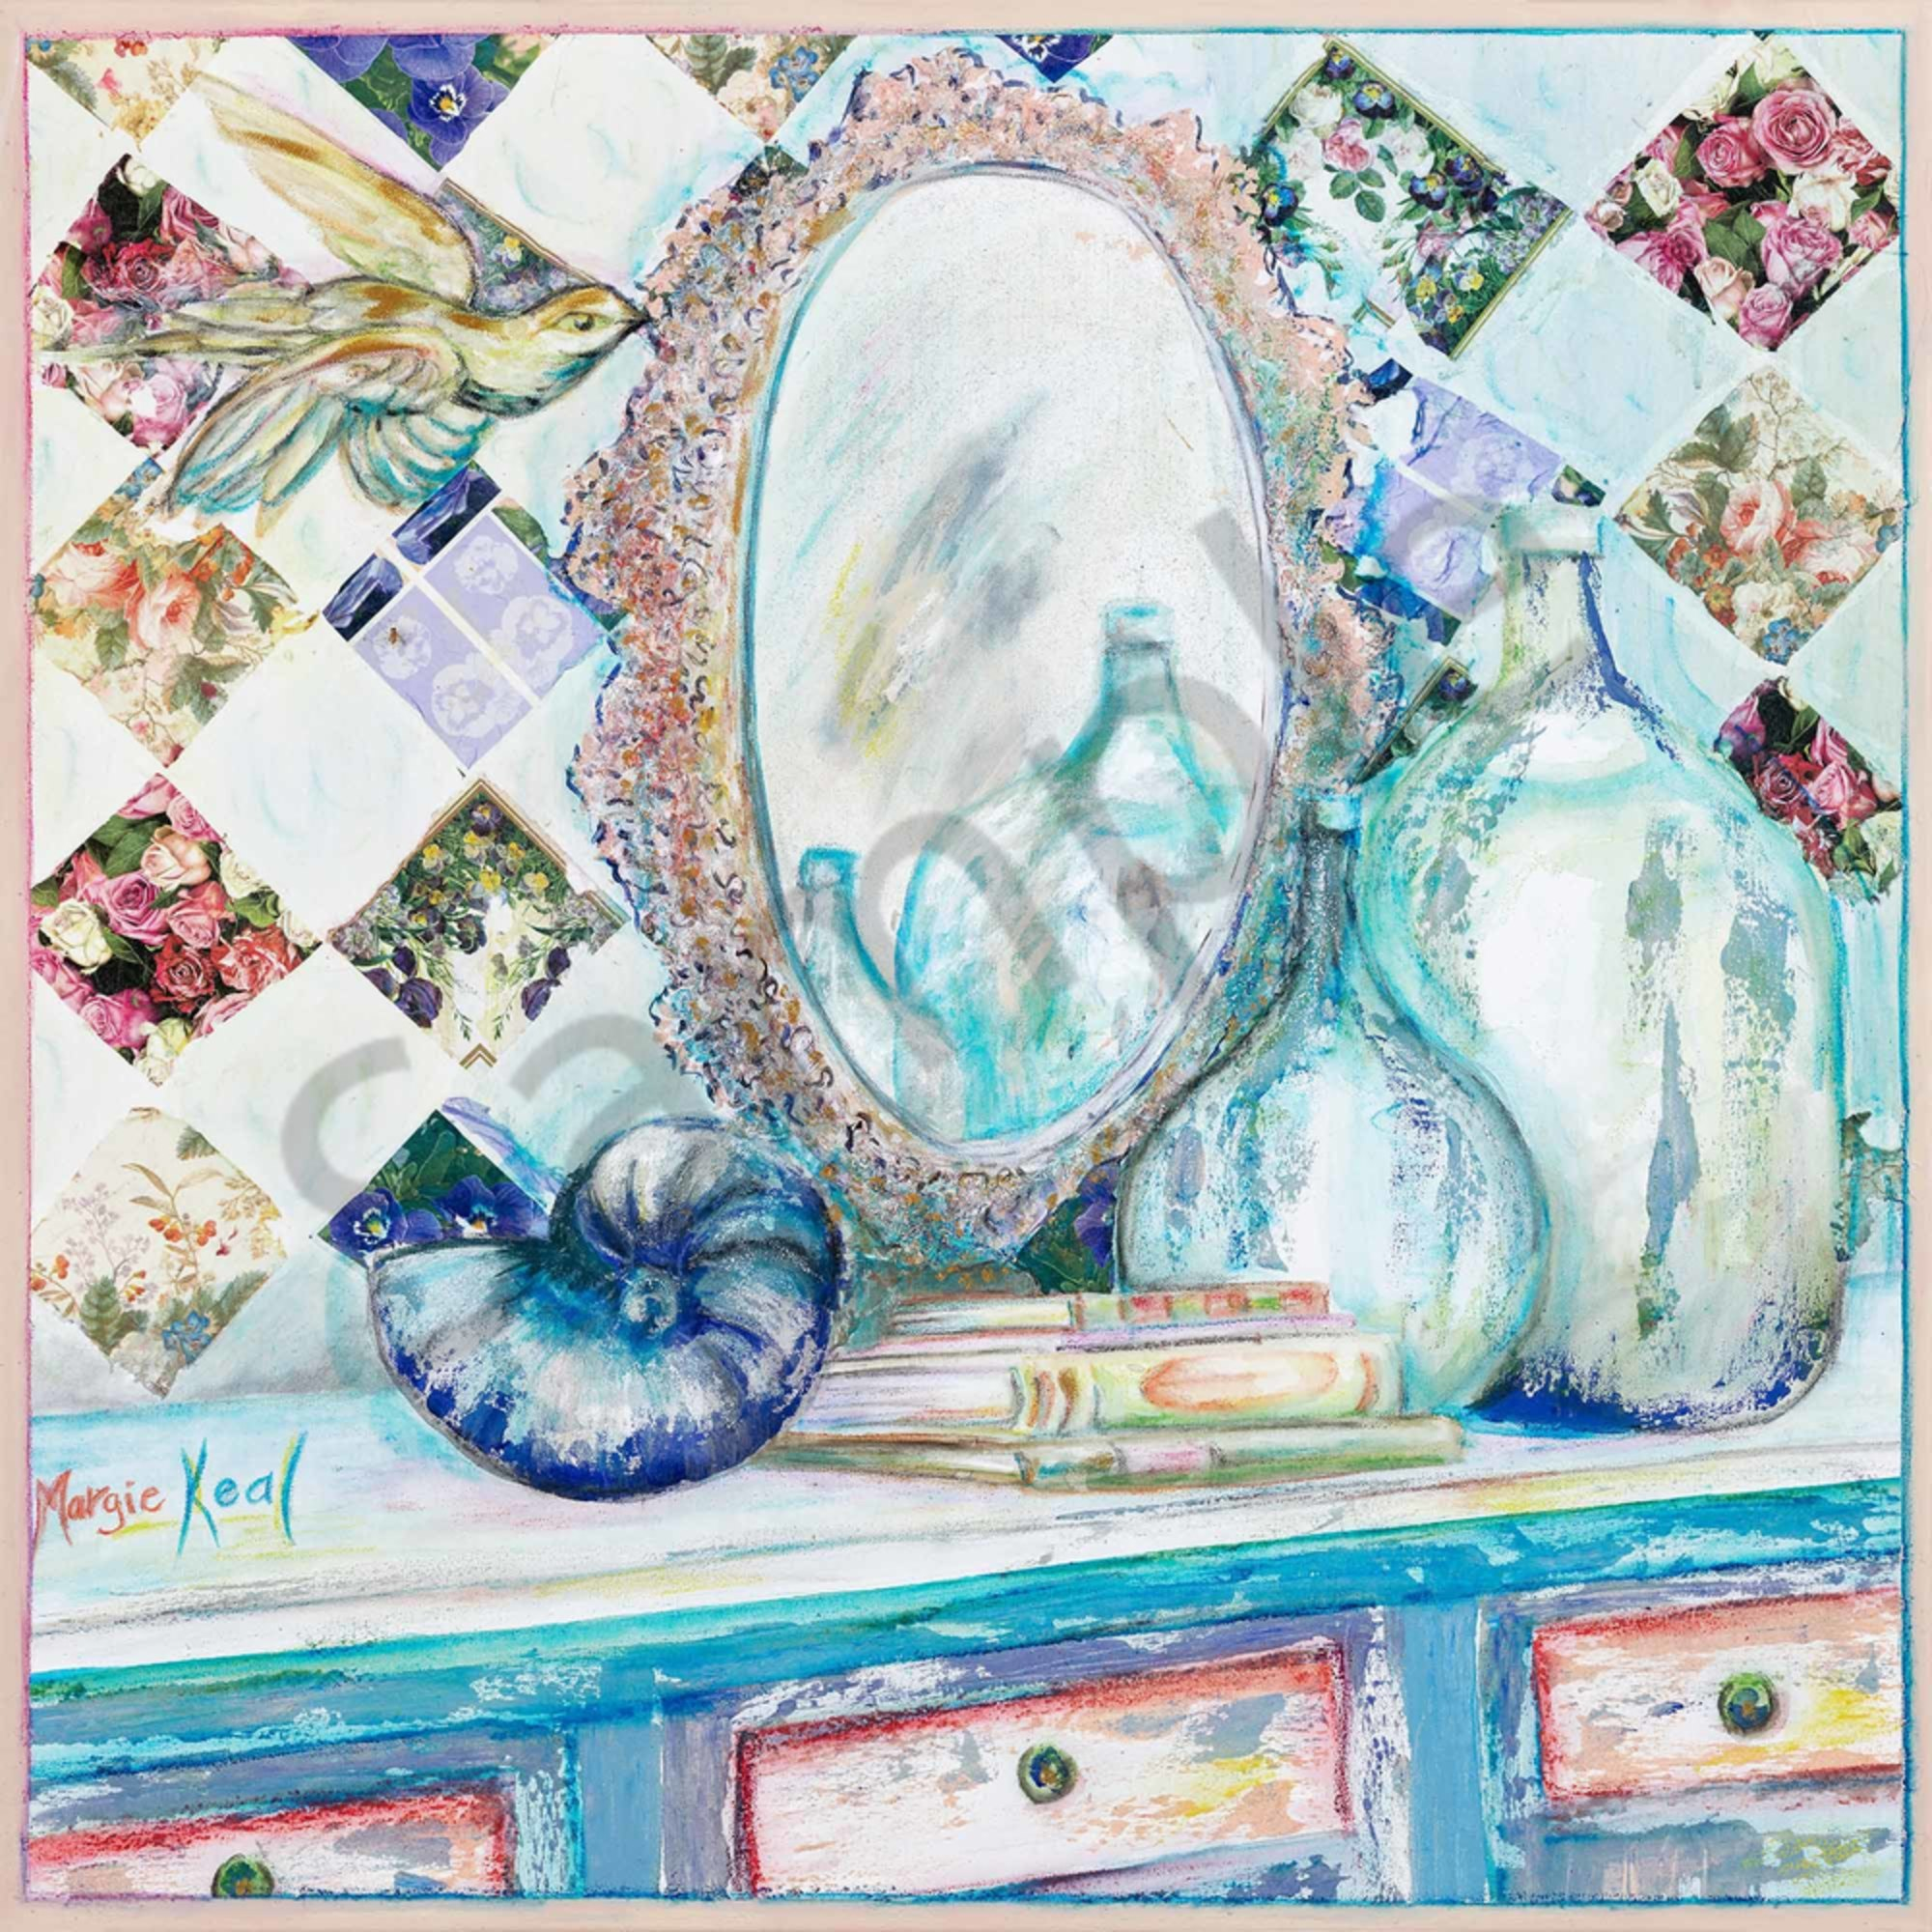 Margaret keal 064 patches of memories 2000px ets4jx